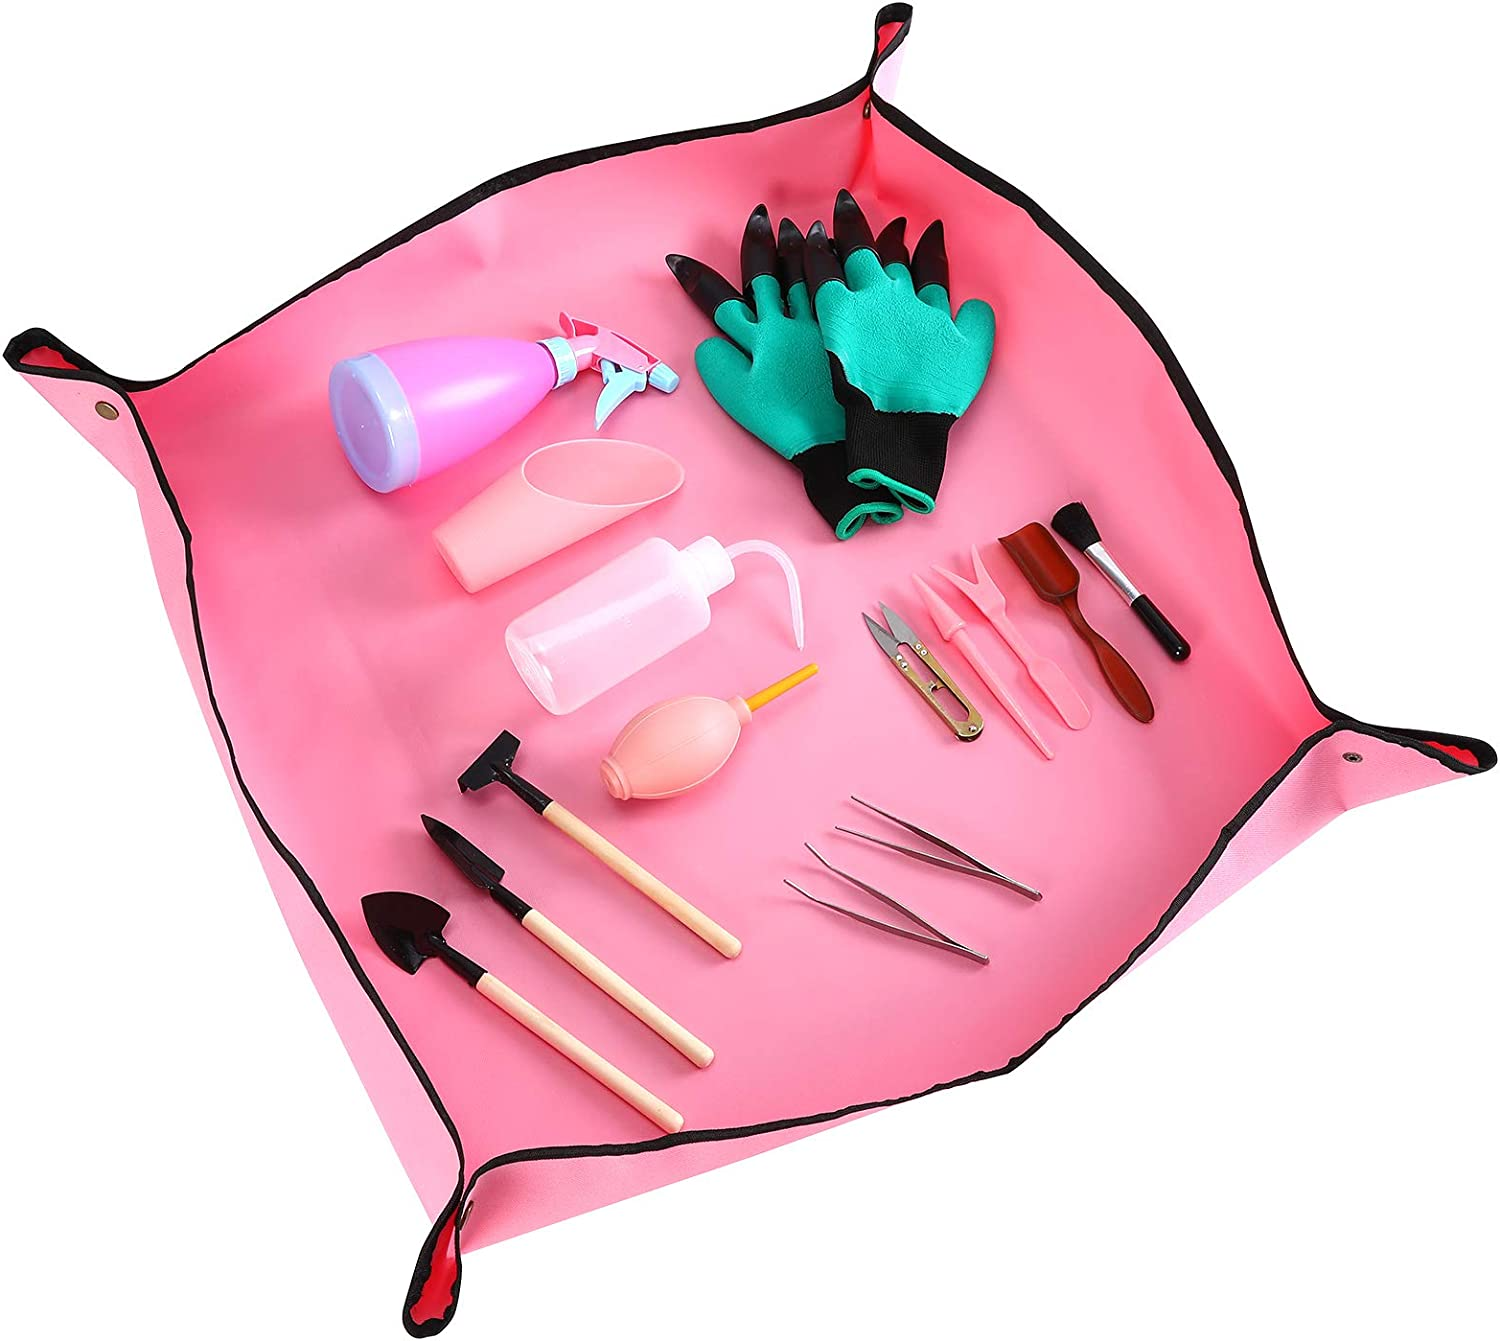 Erikord Garden Succulent Tools Set - 16 Pieces Hand Tool Mini Kit Gloves Digging with Claws Plant Repotting Transplanting Mat for Miniature Fairy Garden Plant Care (Pink)